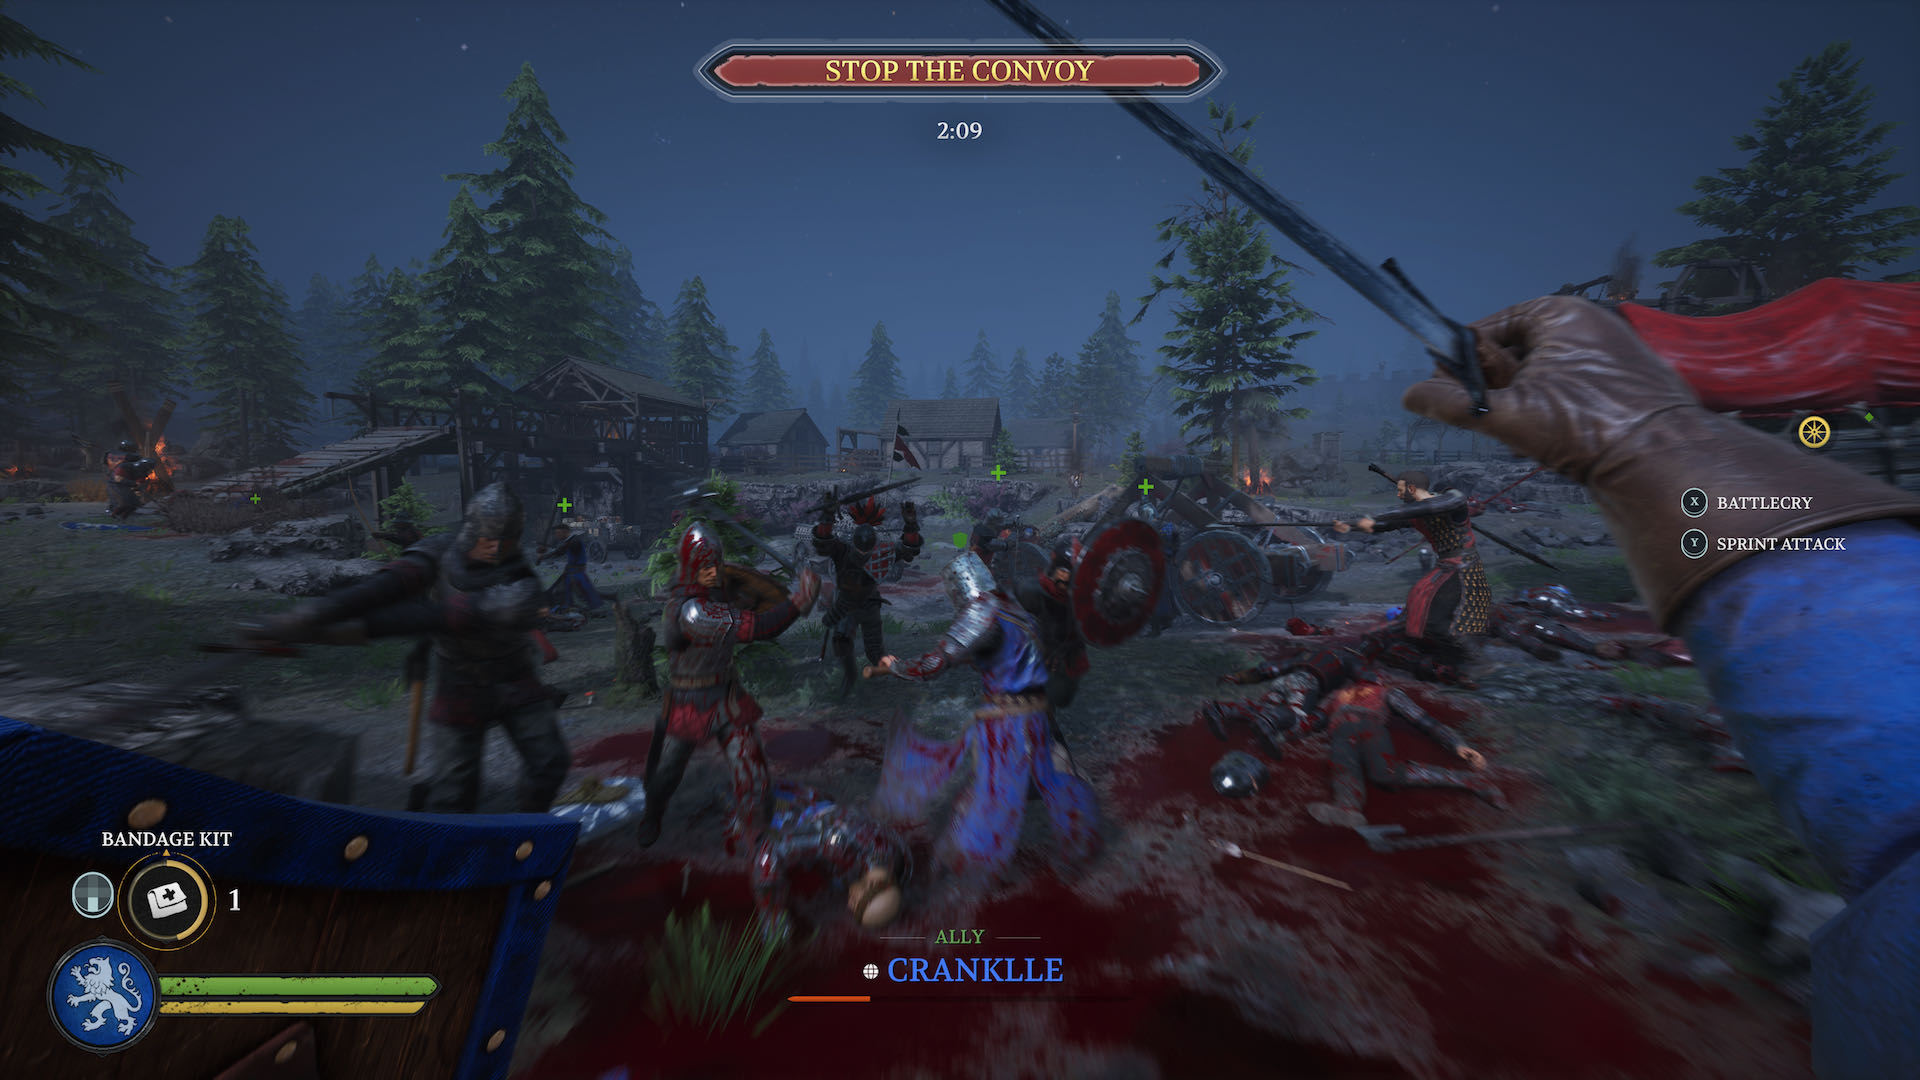 A battle shot from Chivalry 2, you're an archer attempting to stop a convoy.